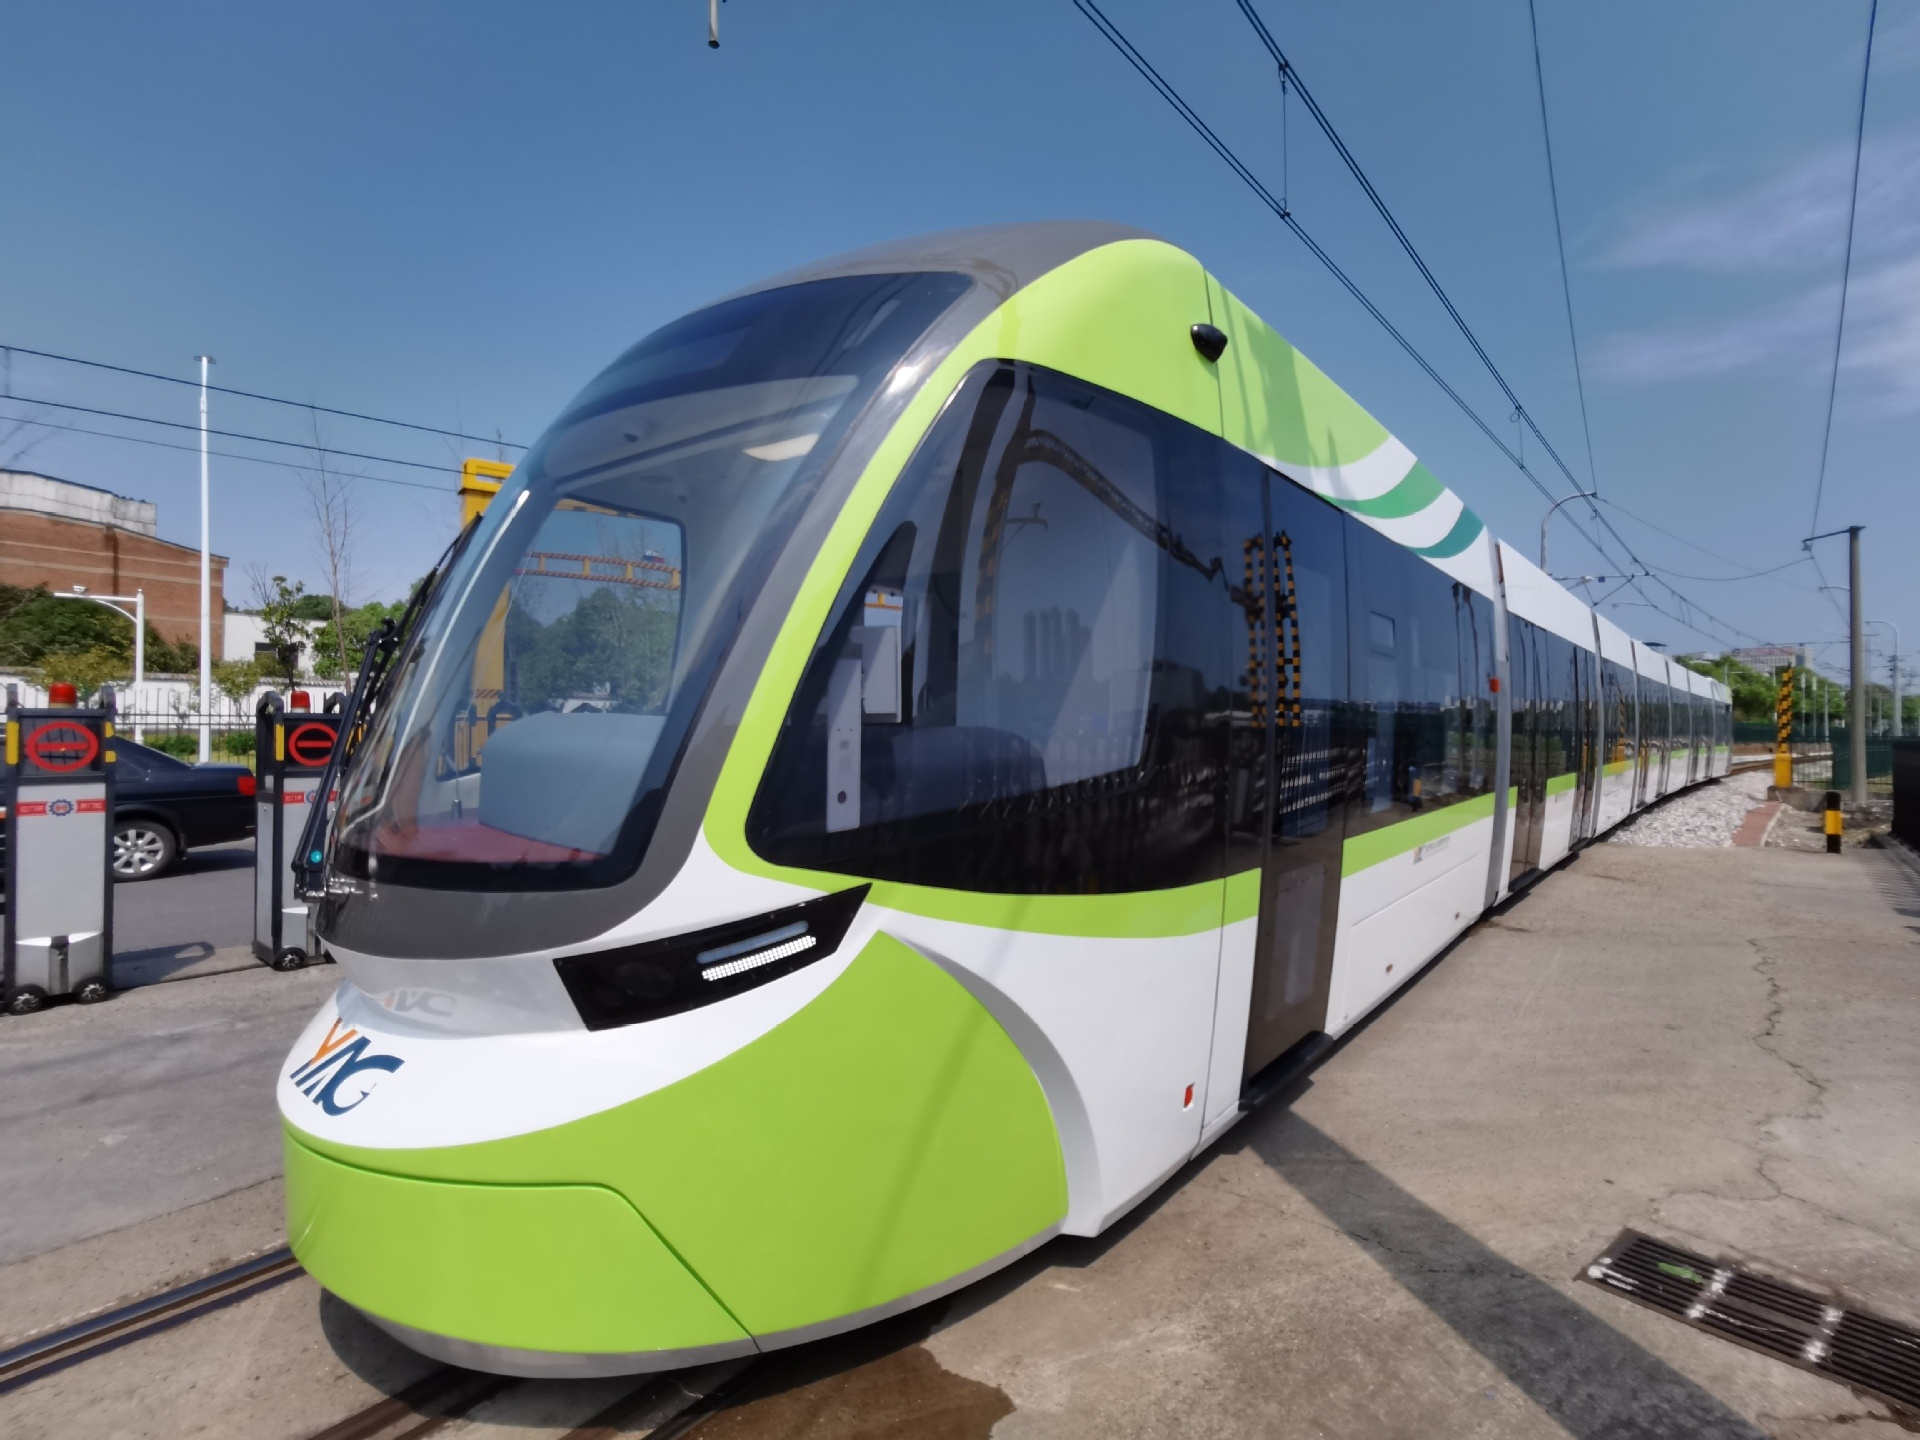 China unveils world's first self-driving tram